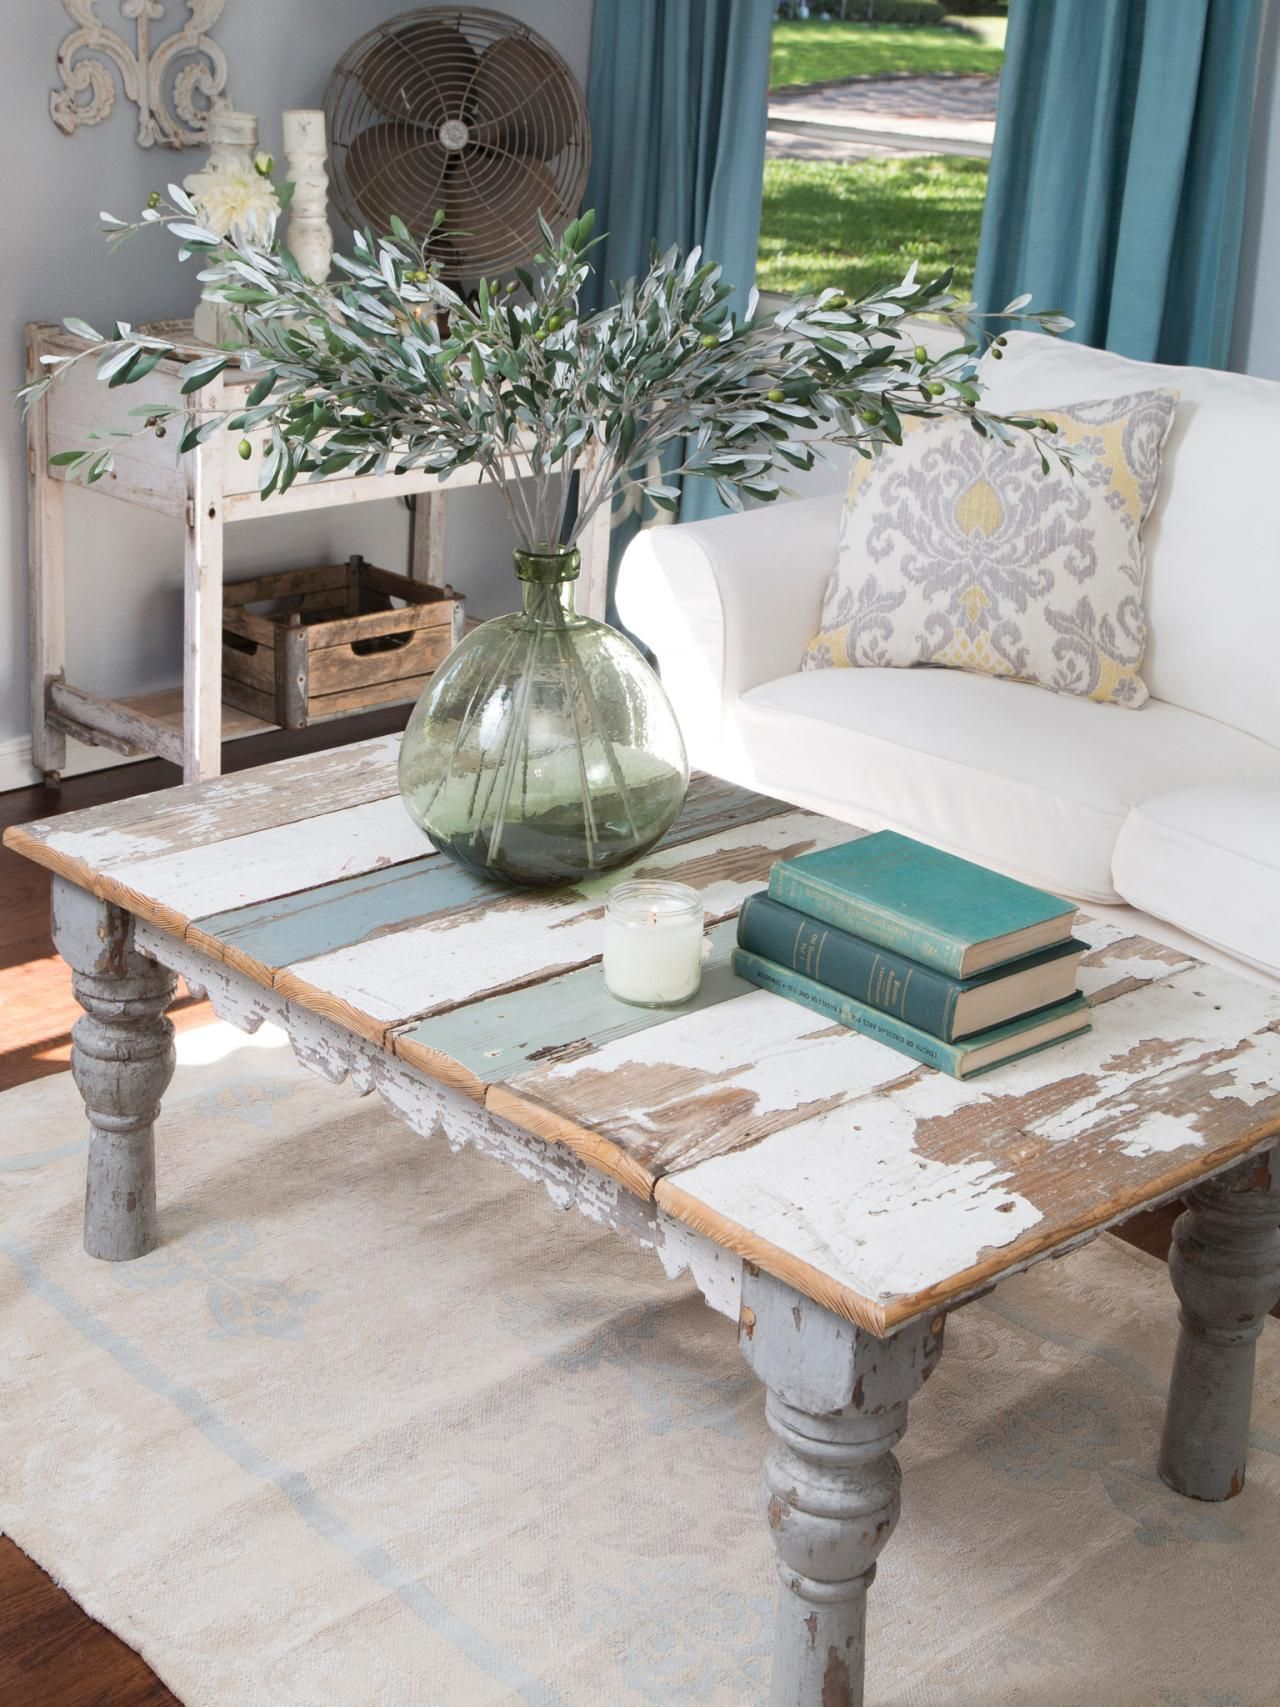 Joanna gaines style on pinterest joanna gaines fixer for Fixer upper chip and joanna gaines